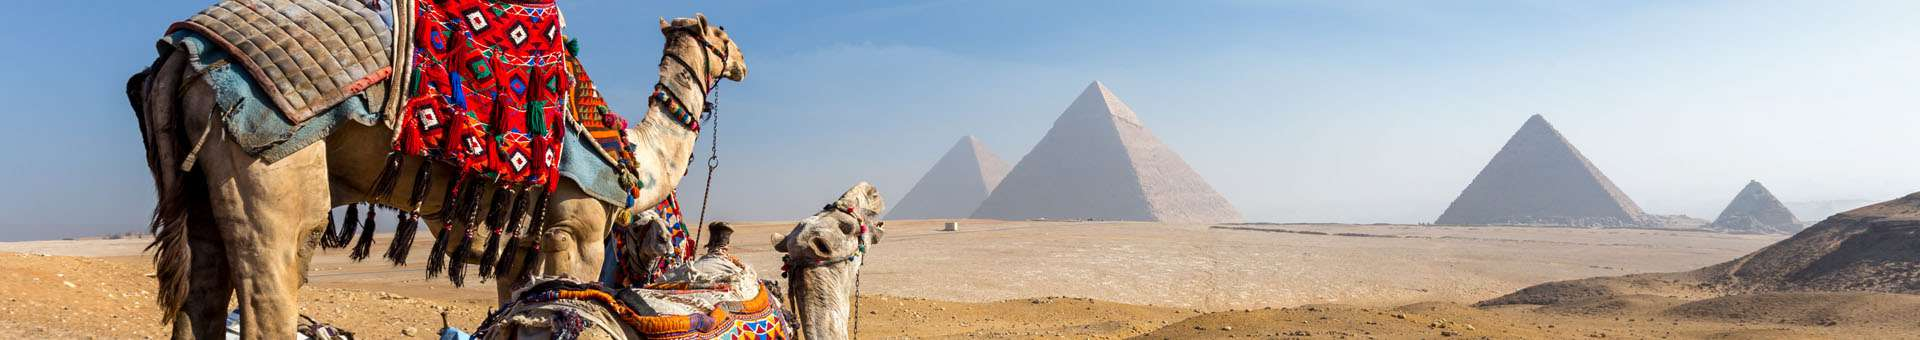 Search Whois information of domain names in Egypt